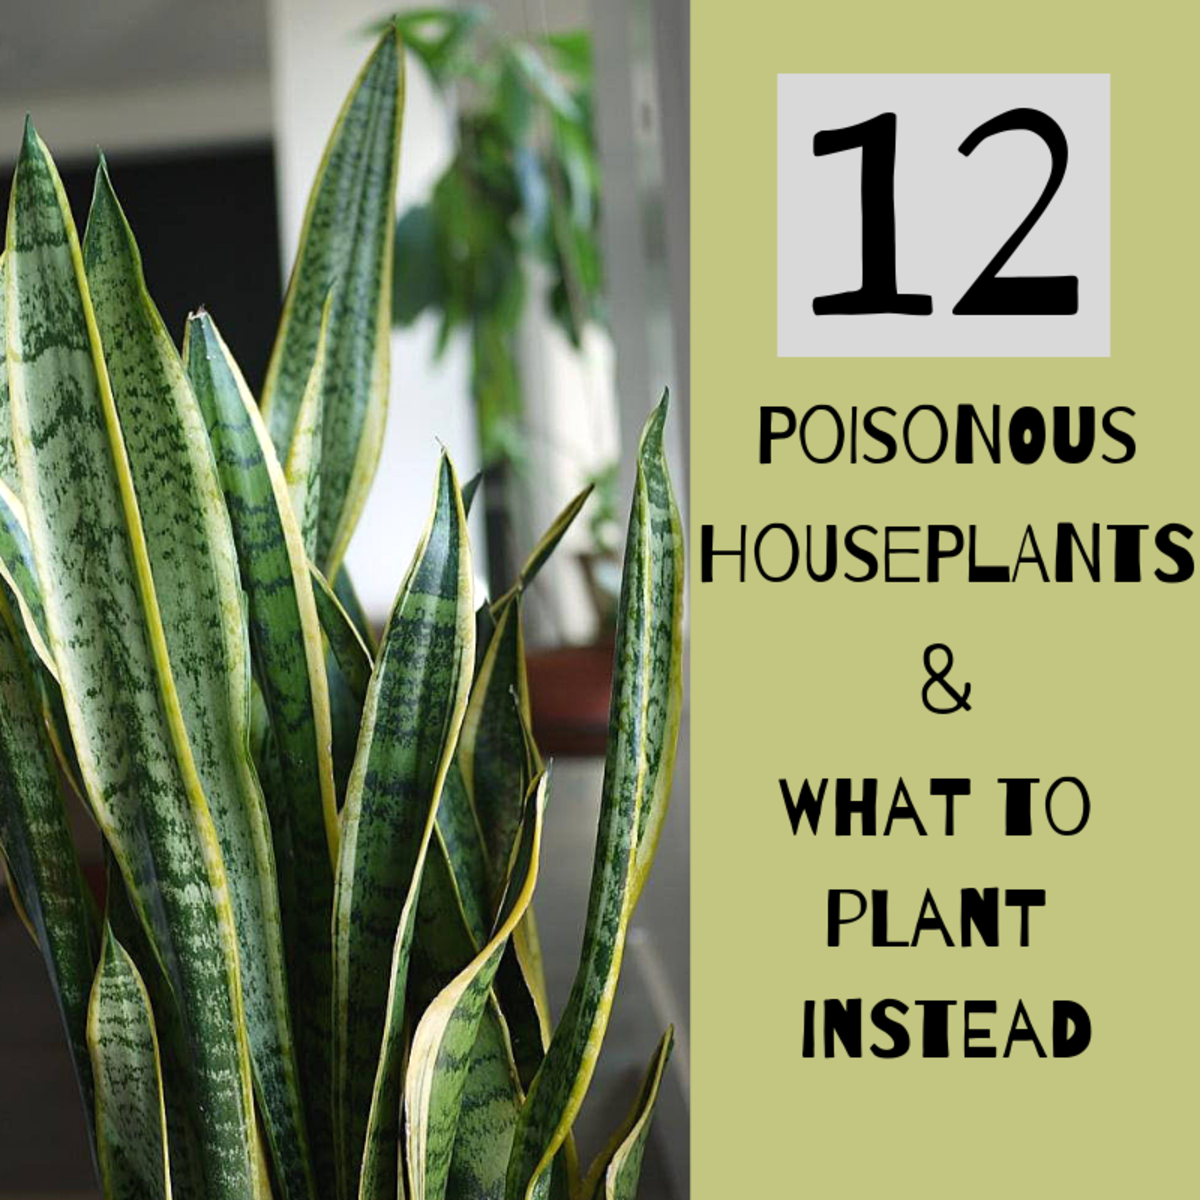 12 Poisonous House Plants, Their Health Effects, and Safe Alternatives